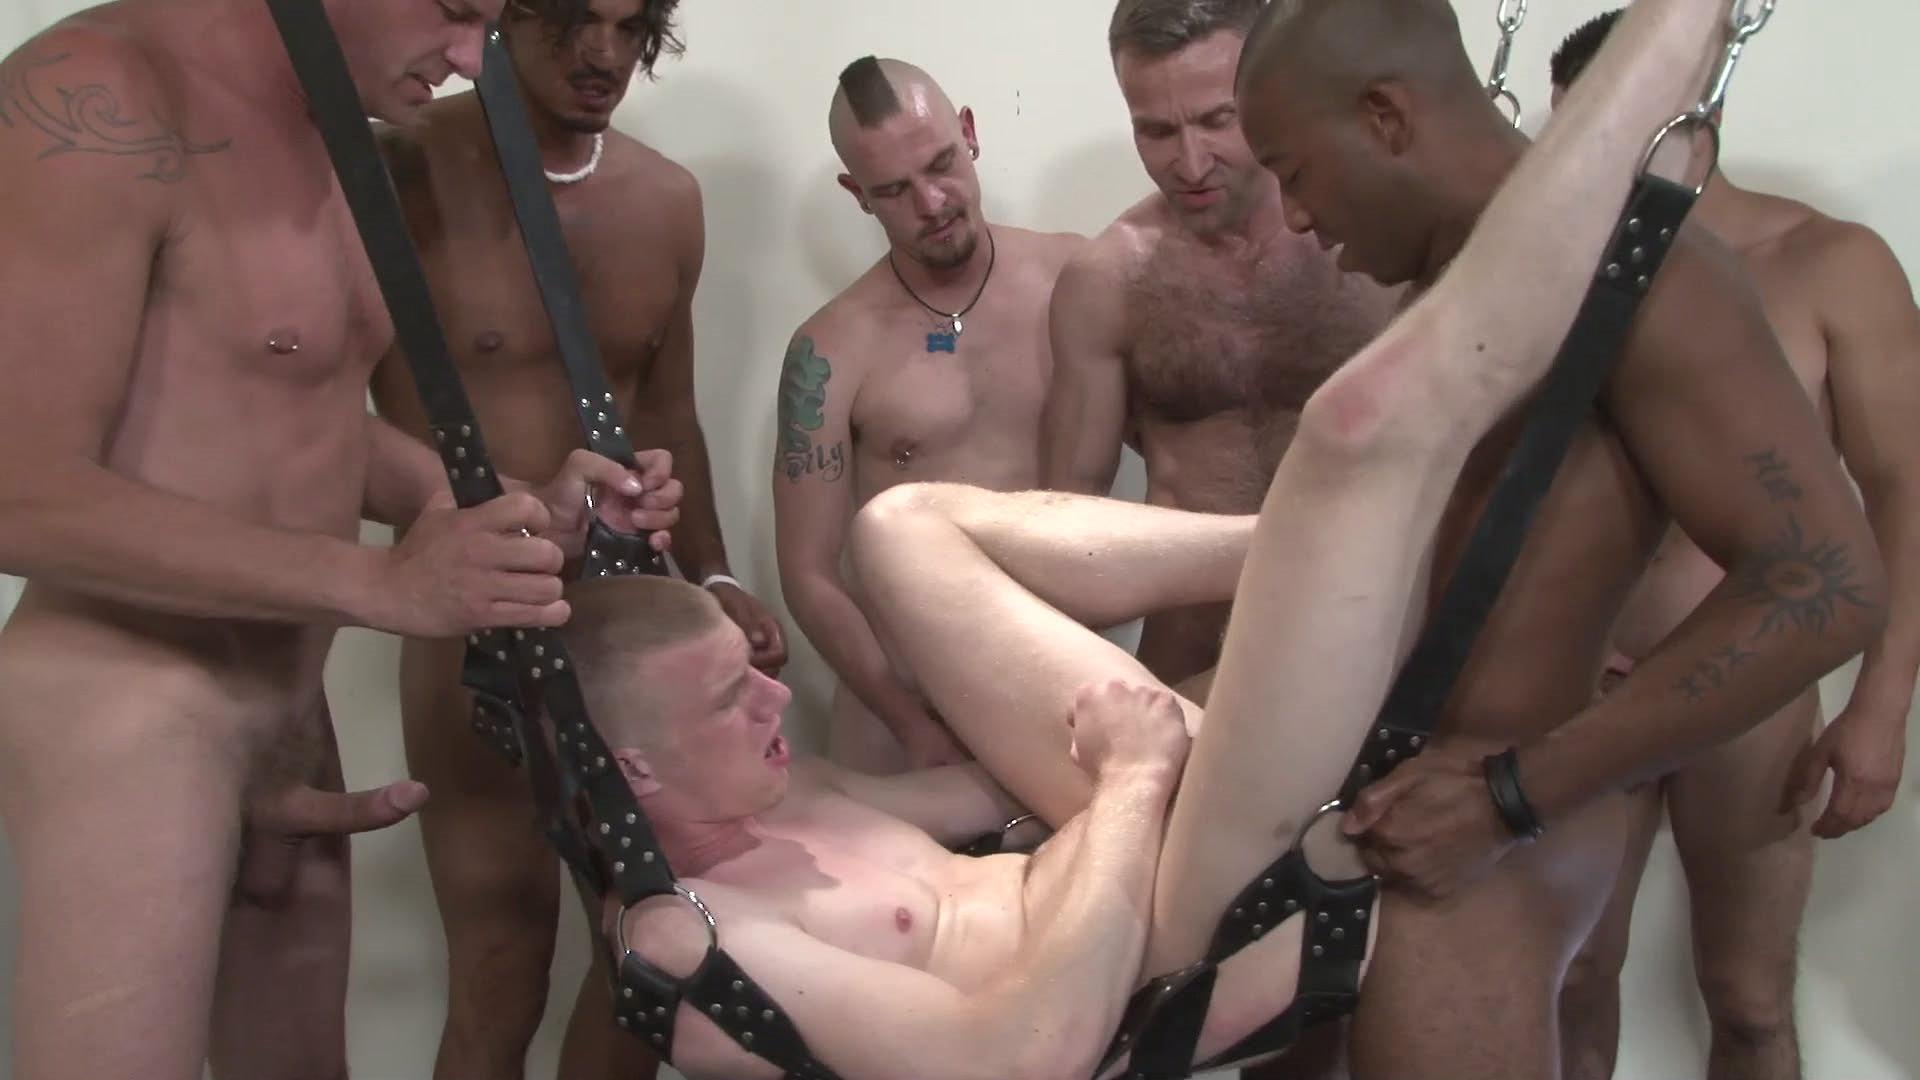 Gay ass gang bang porn